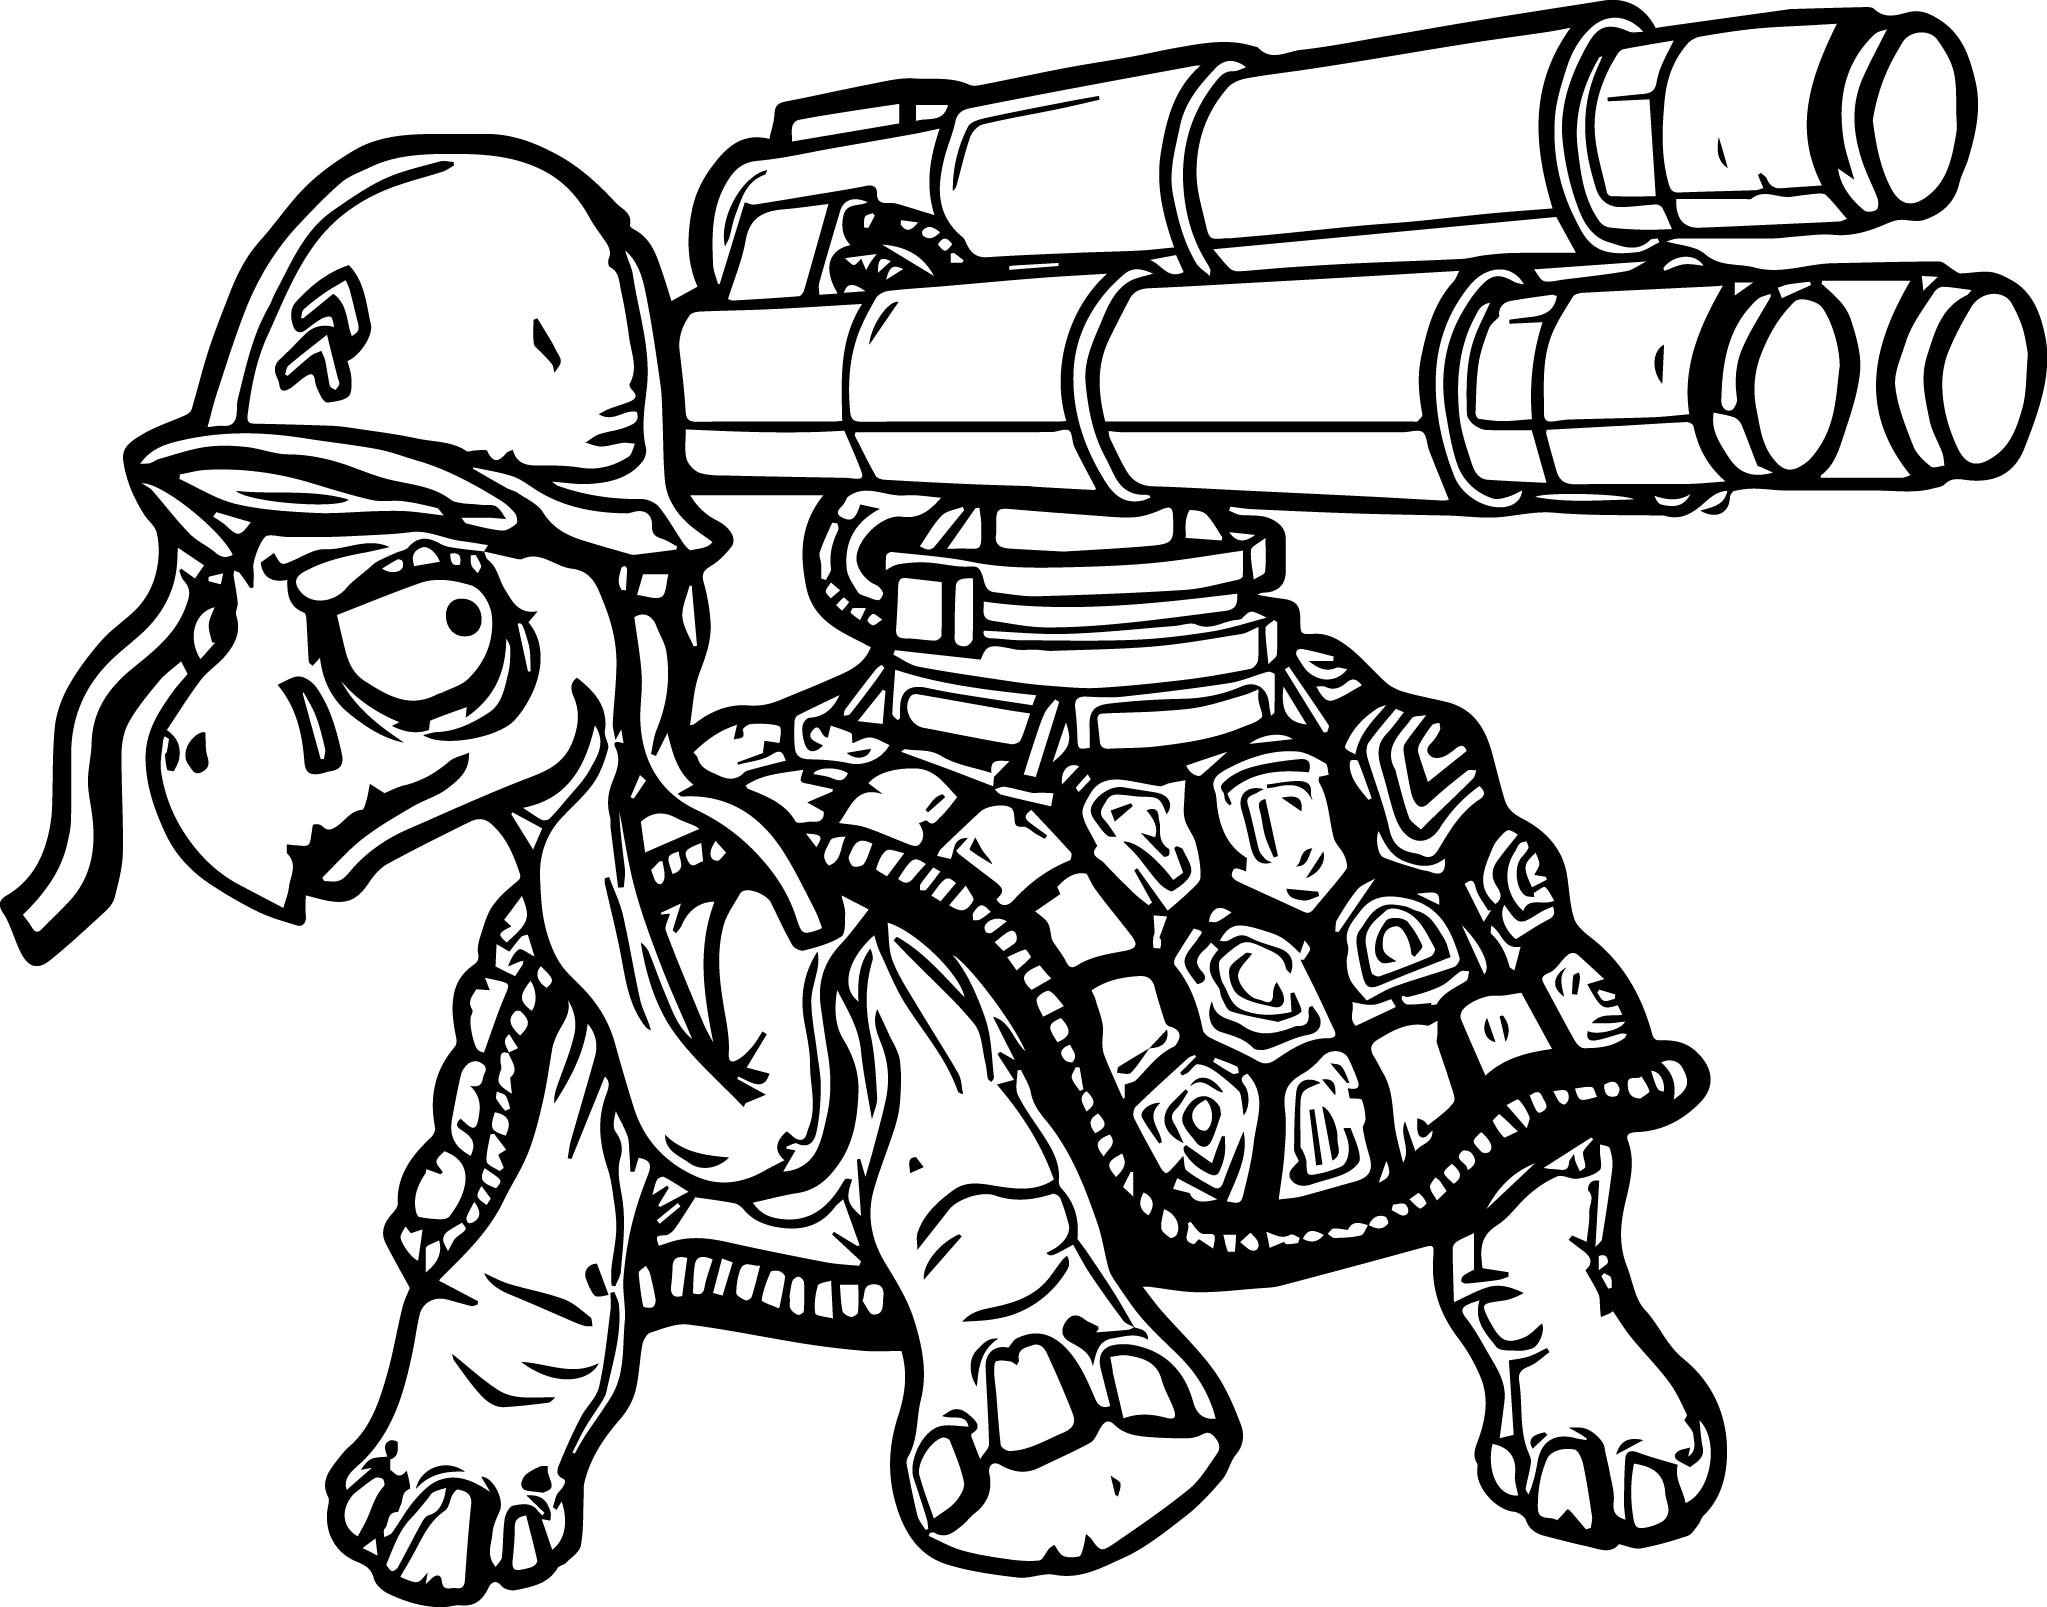 2047x1607 Gun Coloring Pages Beautiful Danger Tortoise Turtle Gun Coloring